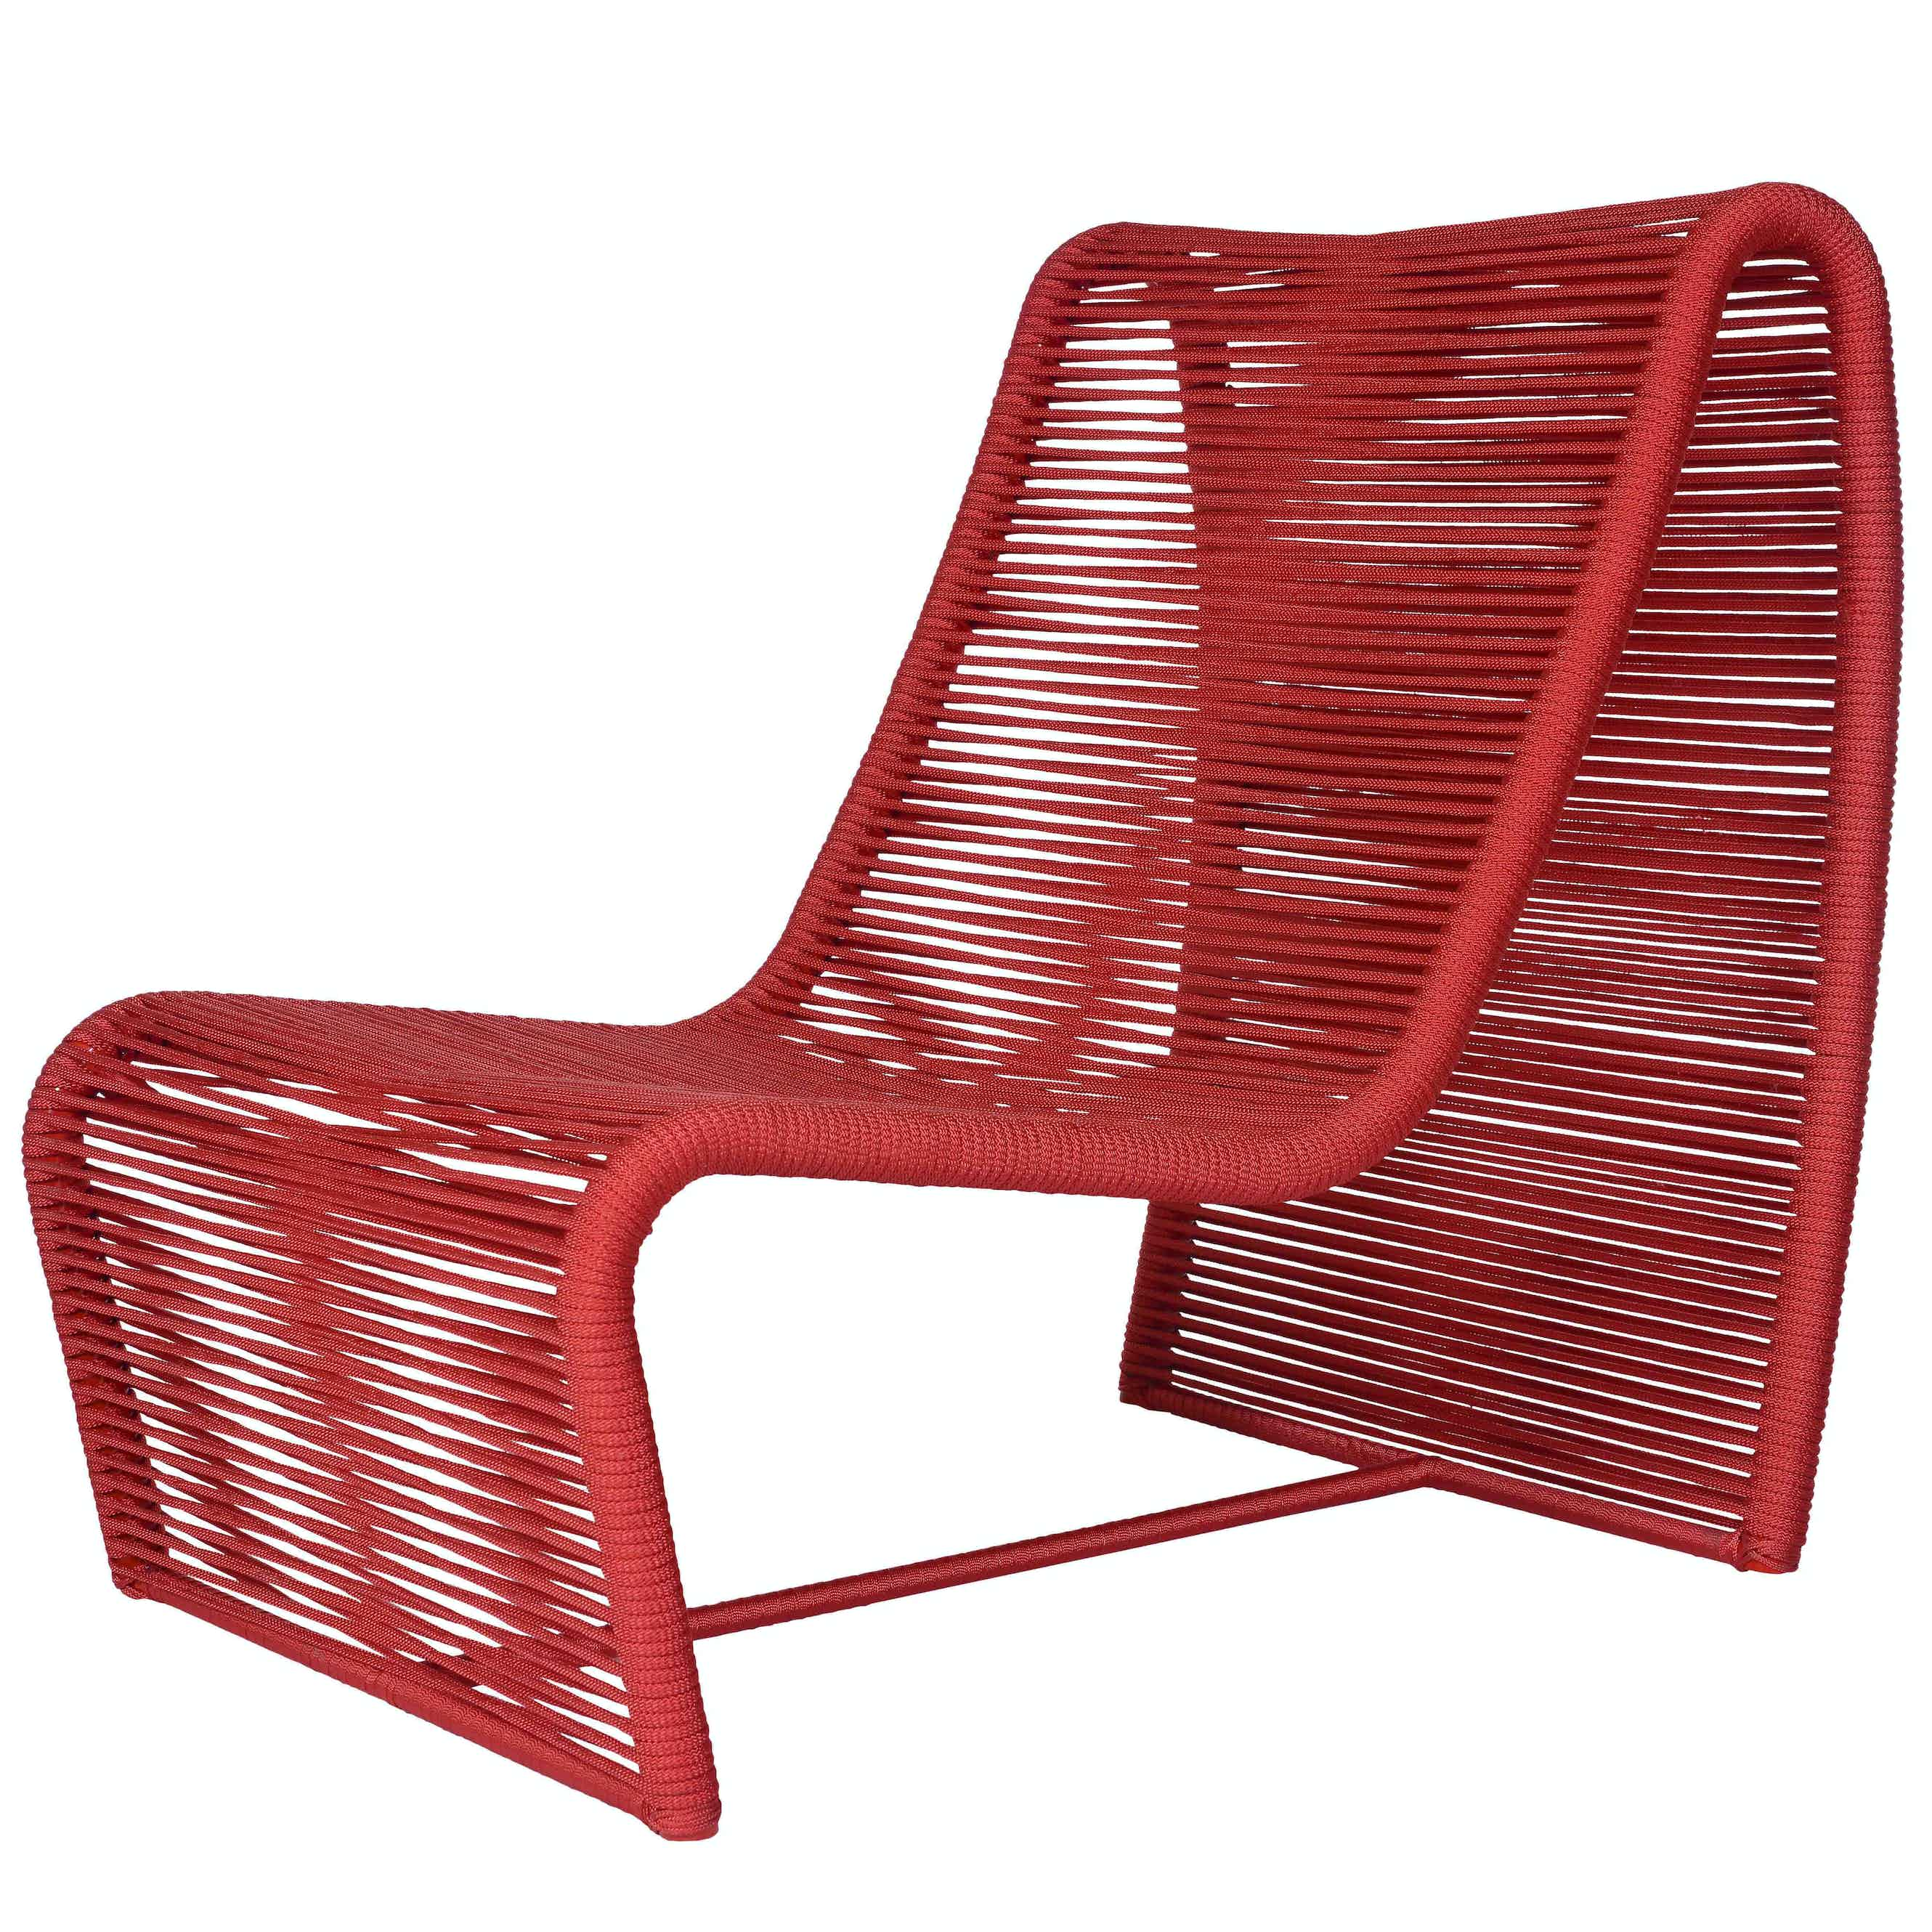 Tidelli sugarloaf lounge chair thumbnail haute living